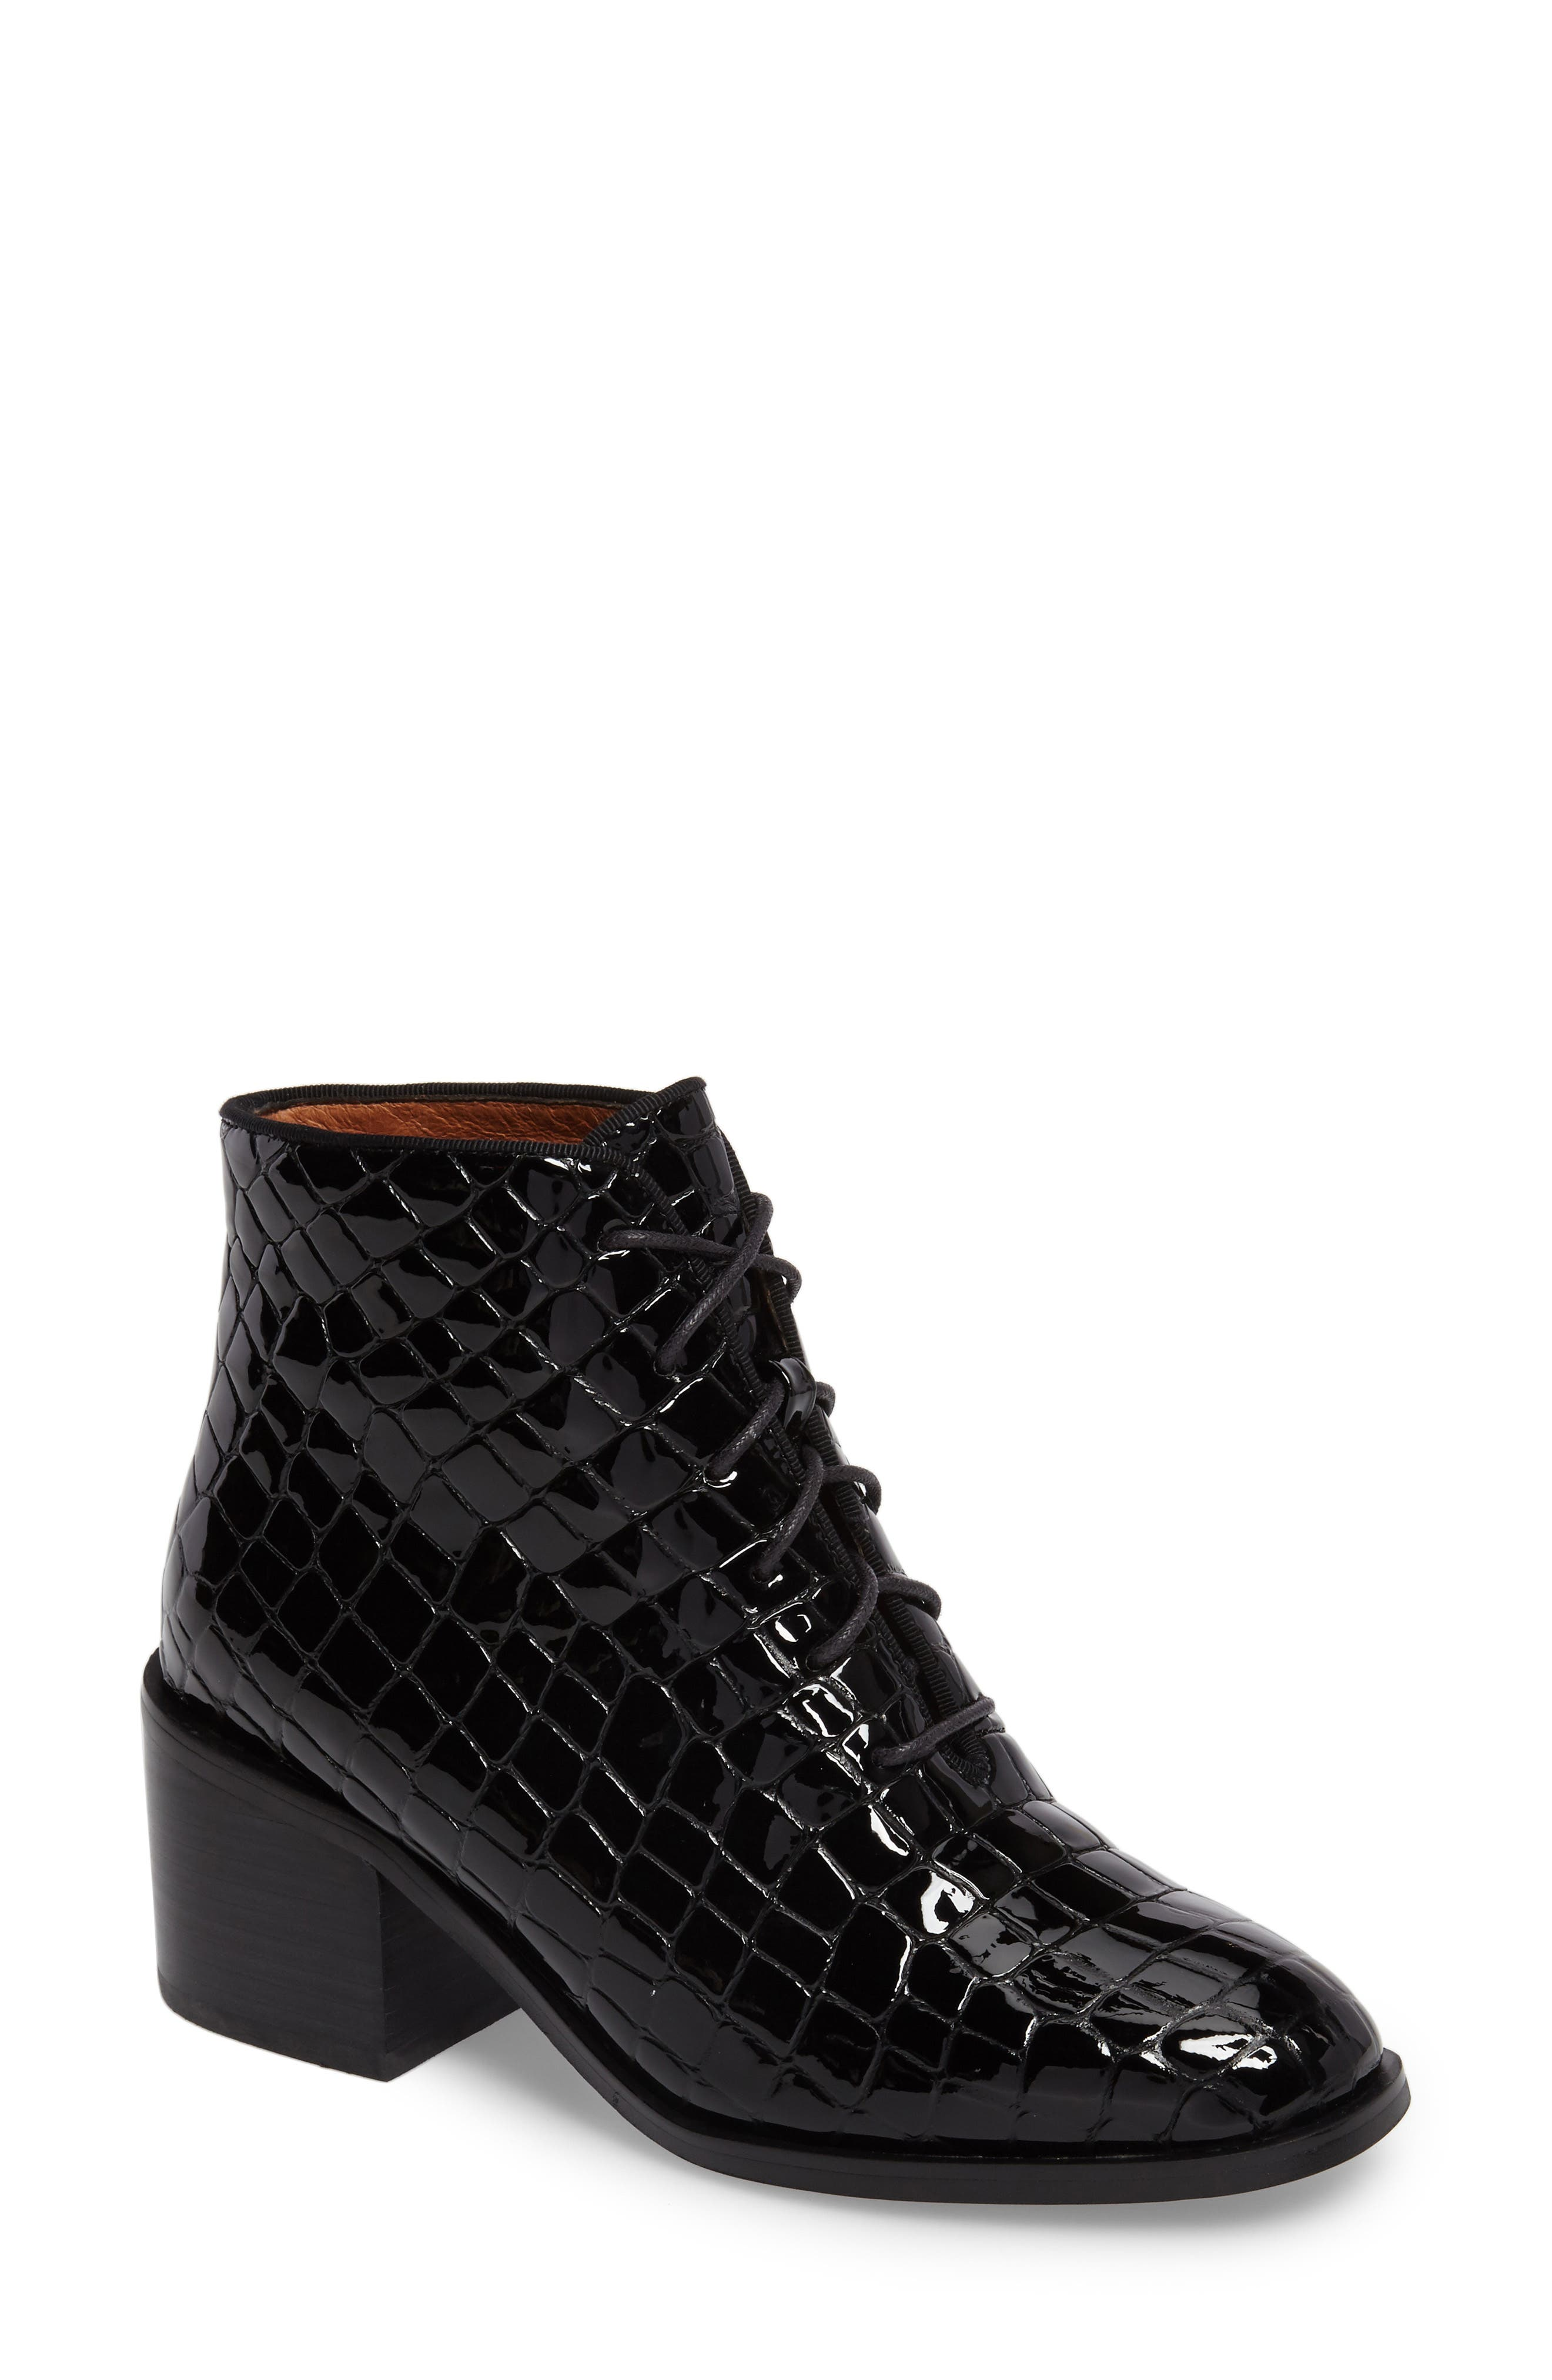 Talcott Block Heel Bootie,                         Main,                         color, Black Patent Stone